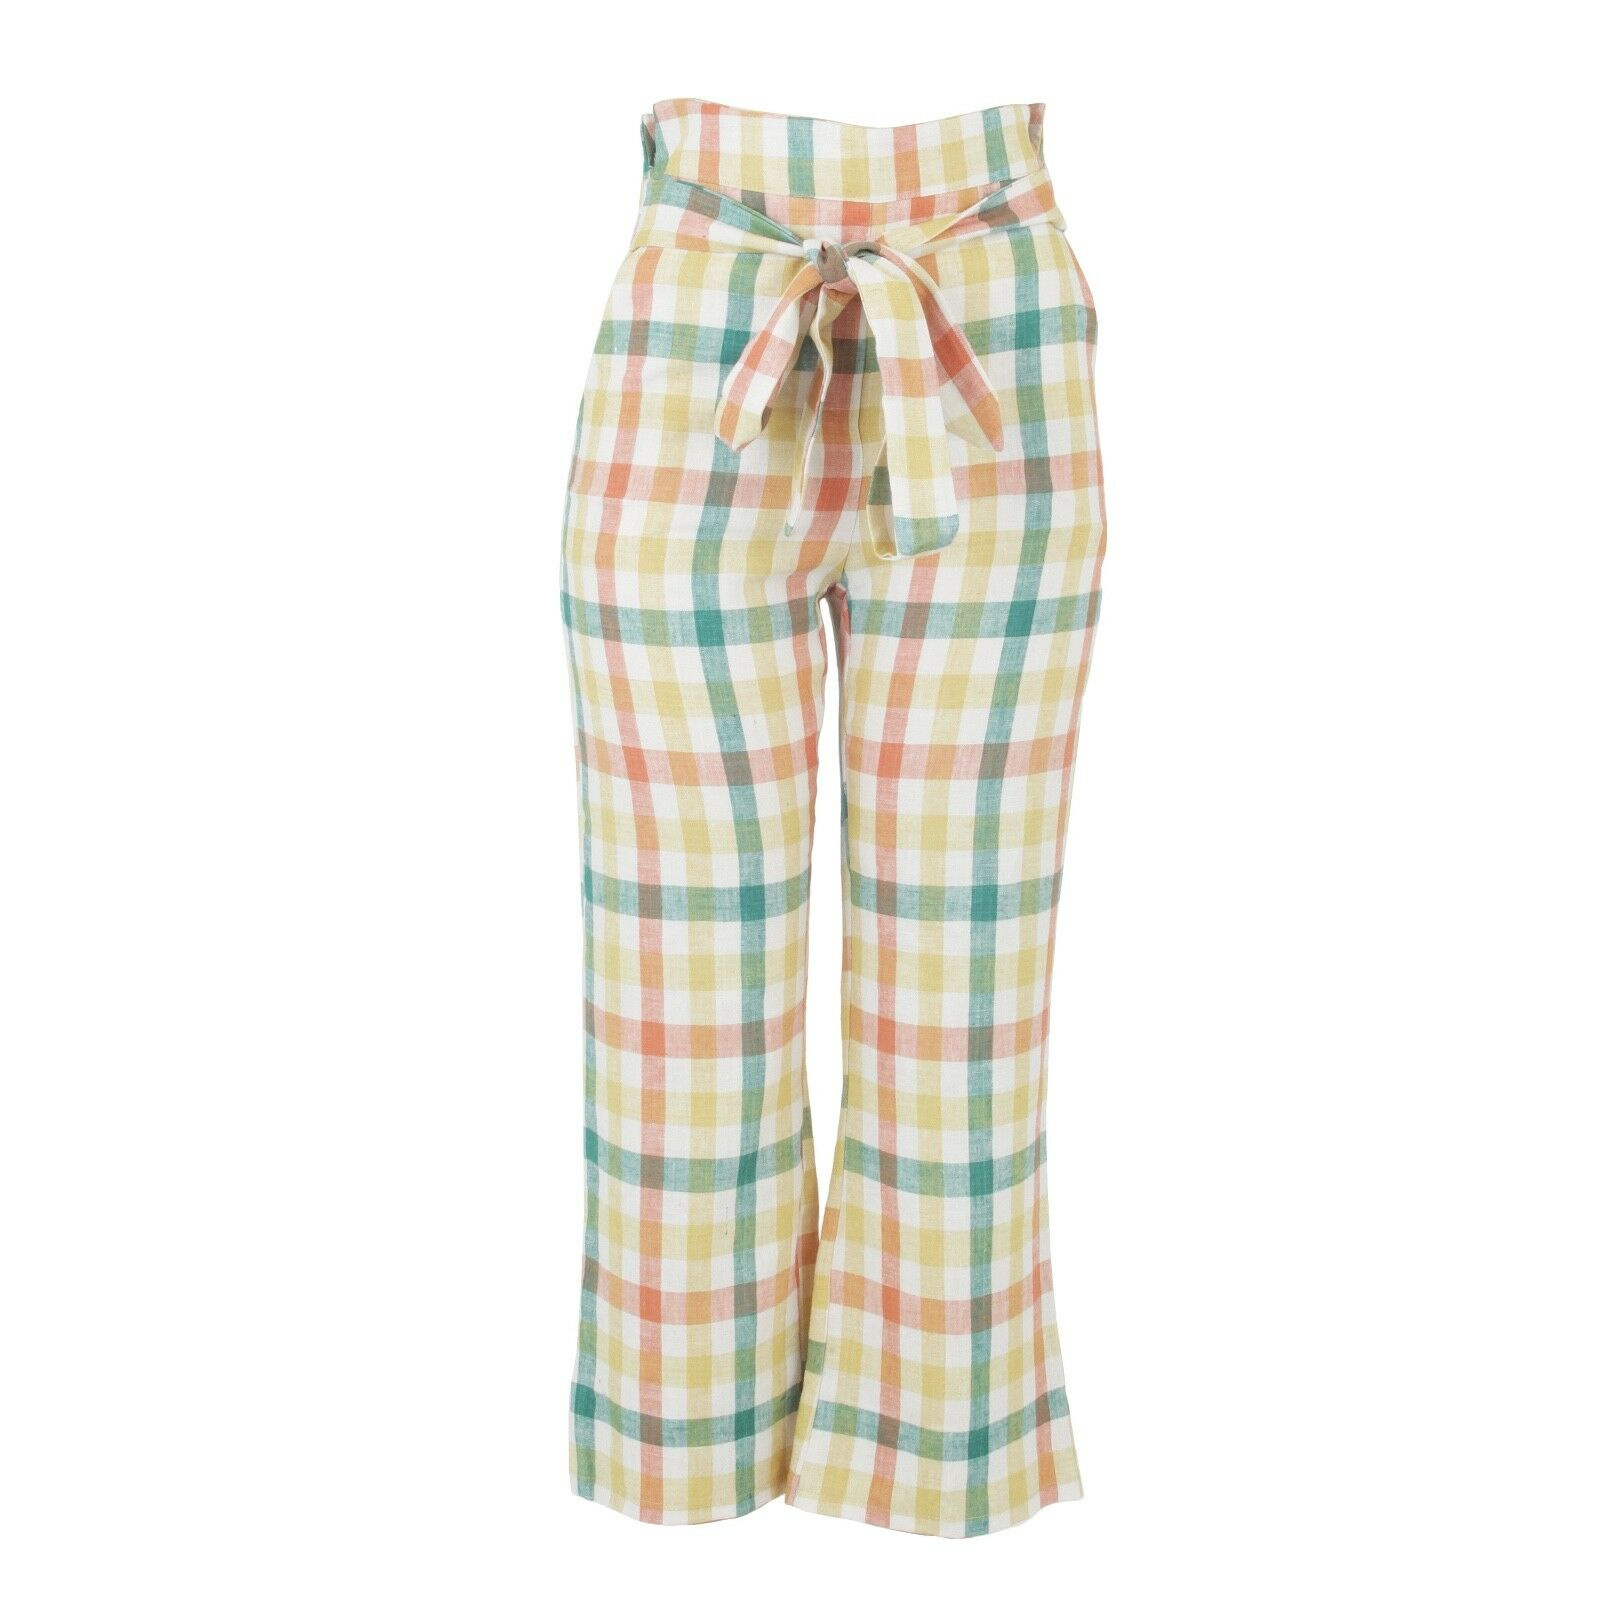 Donni made in L.A flora  high waist linen cotton pants with tie size small